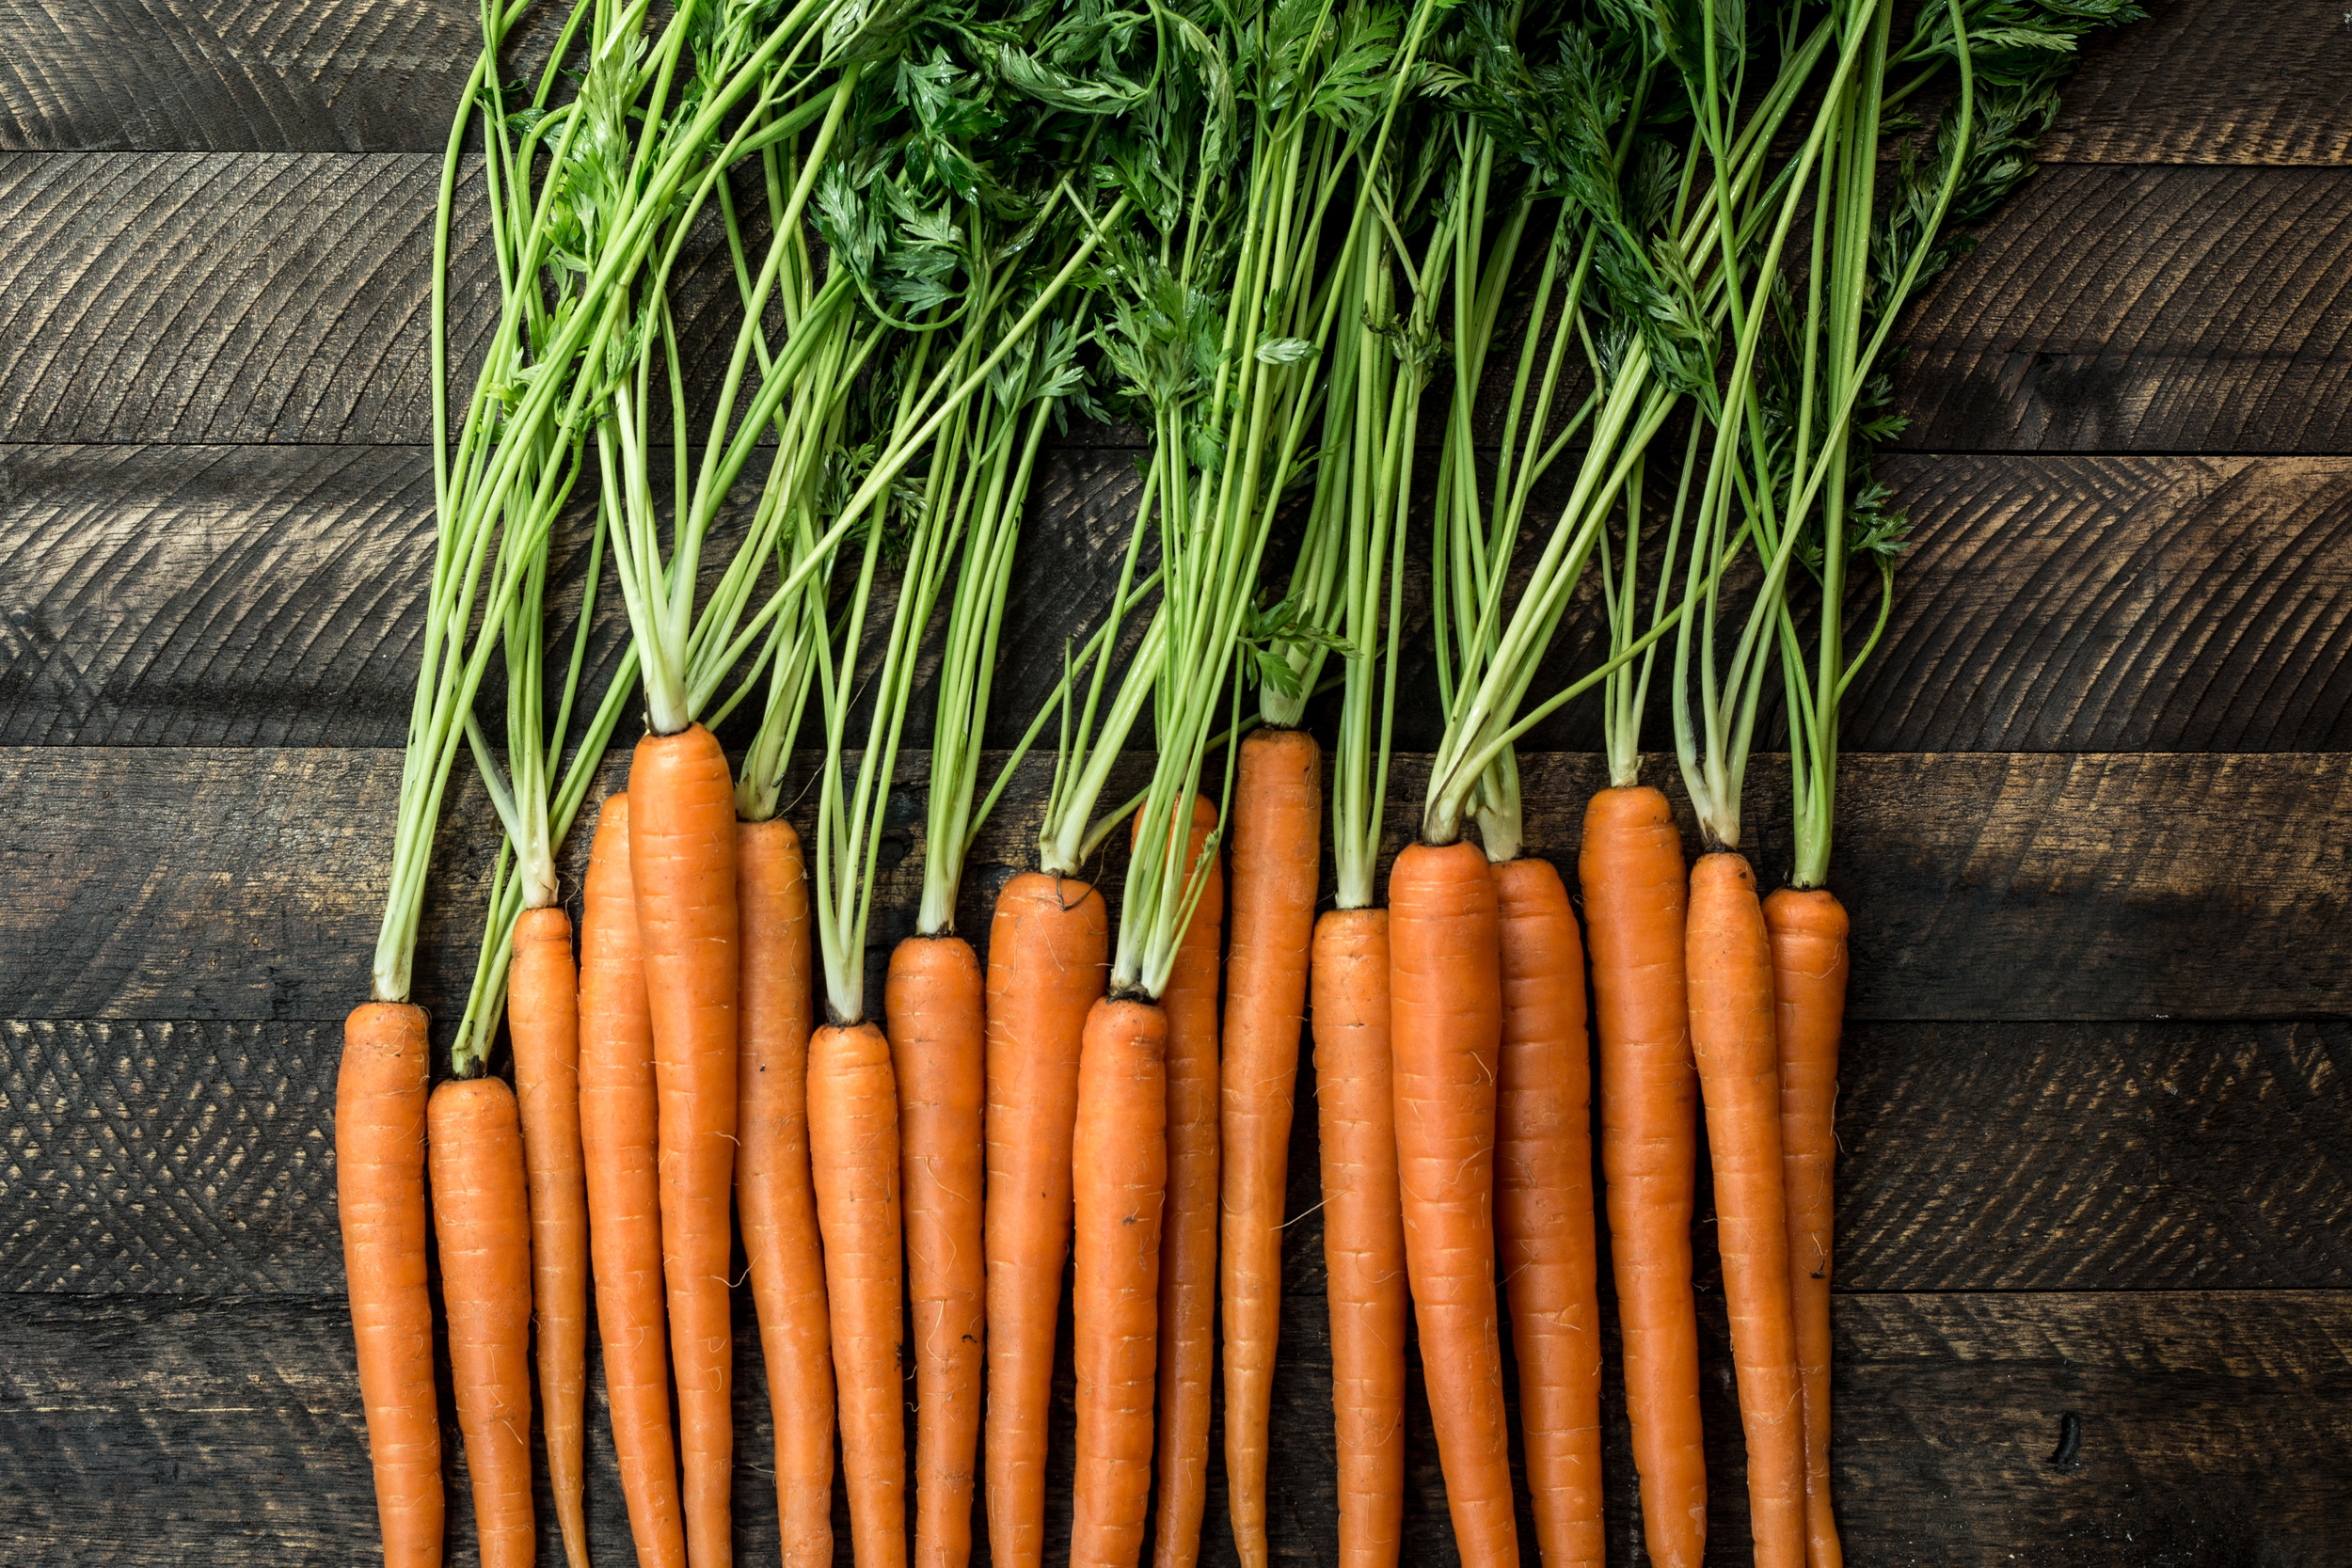 Every Cart Counts featuring Carrots